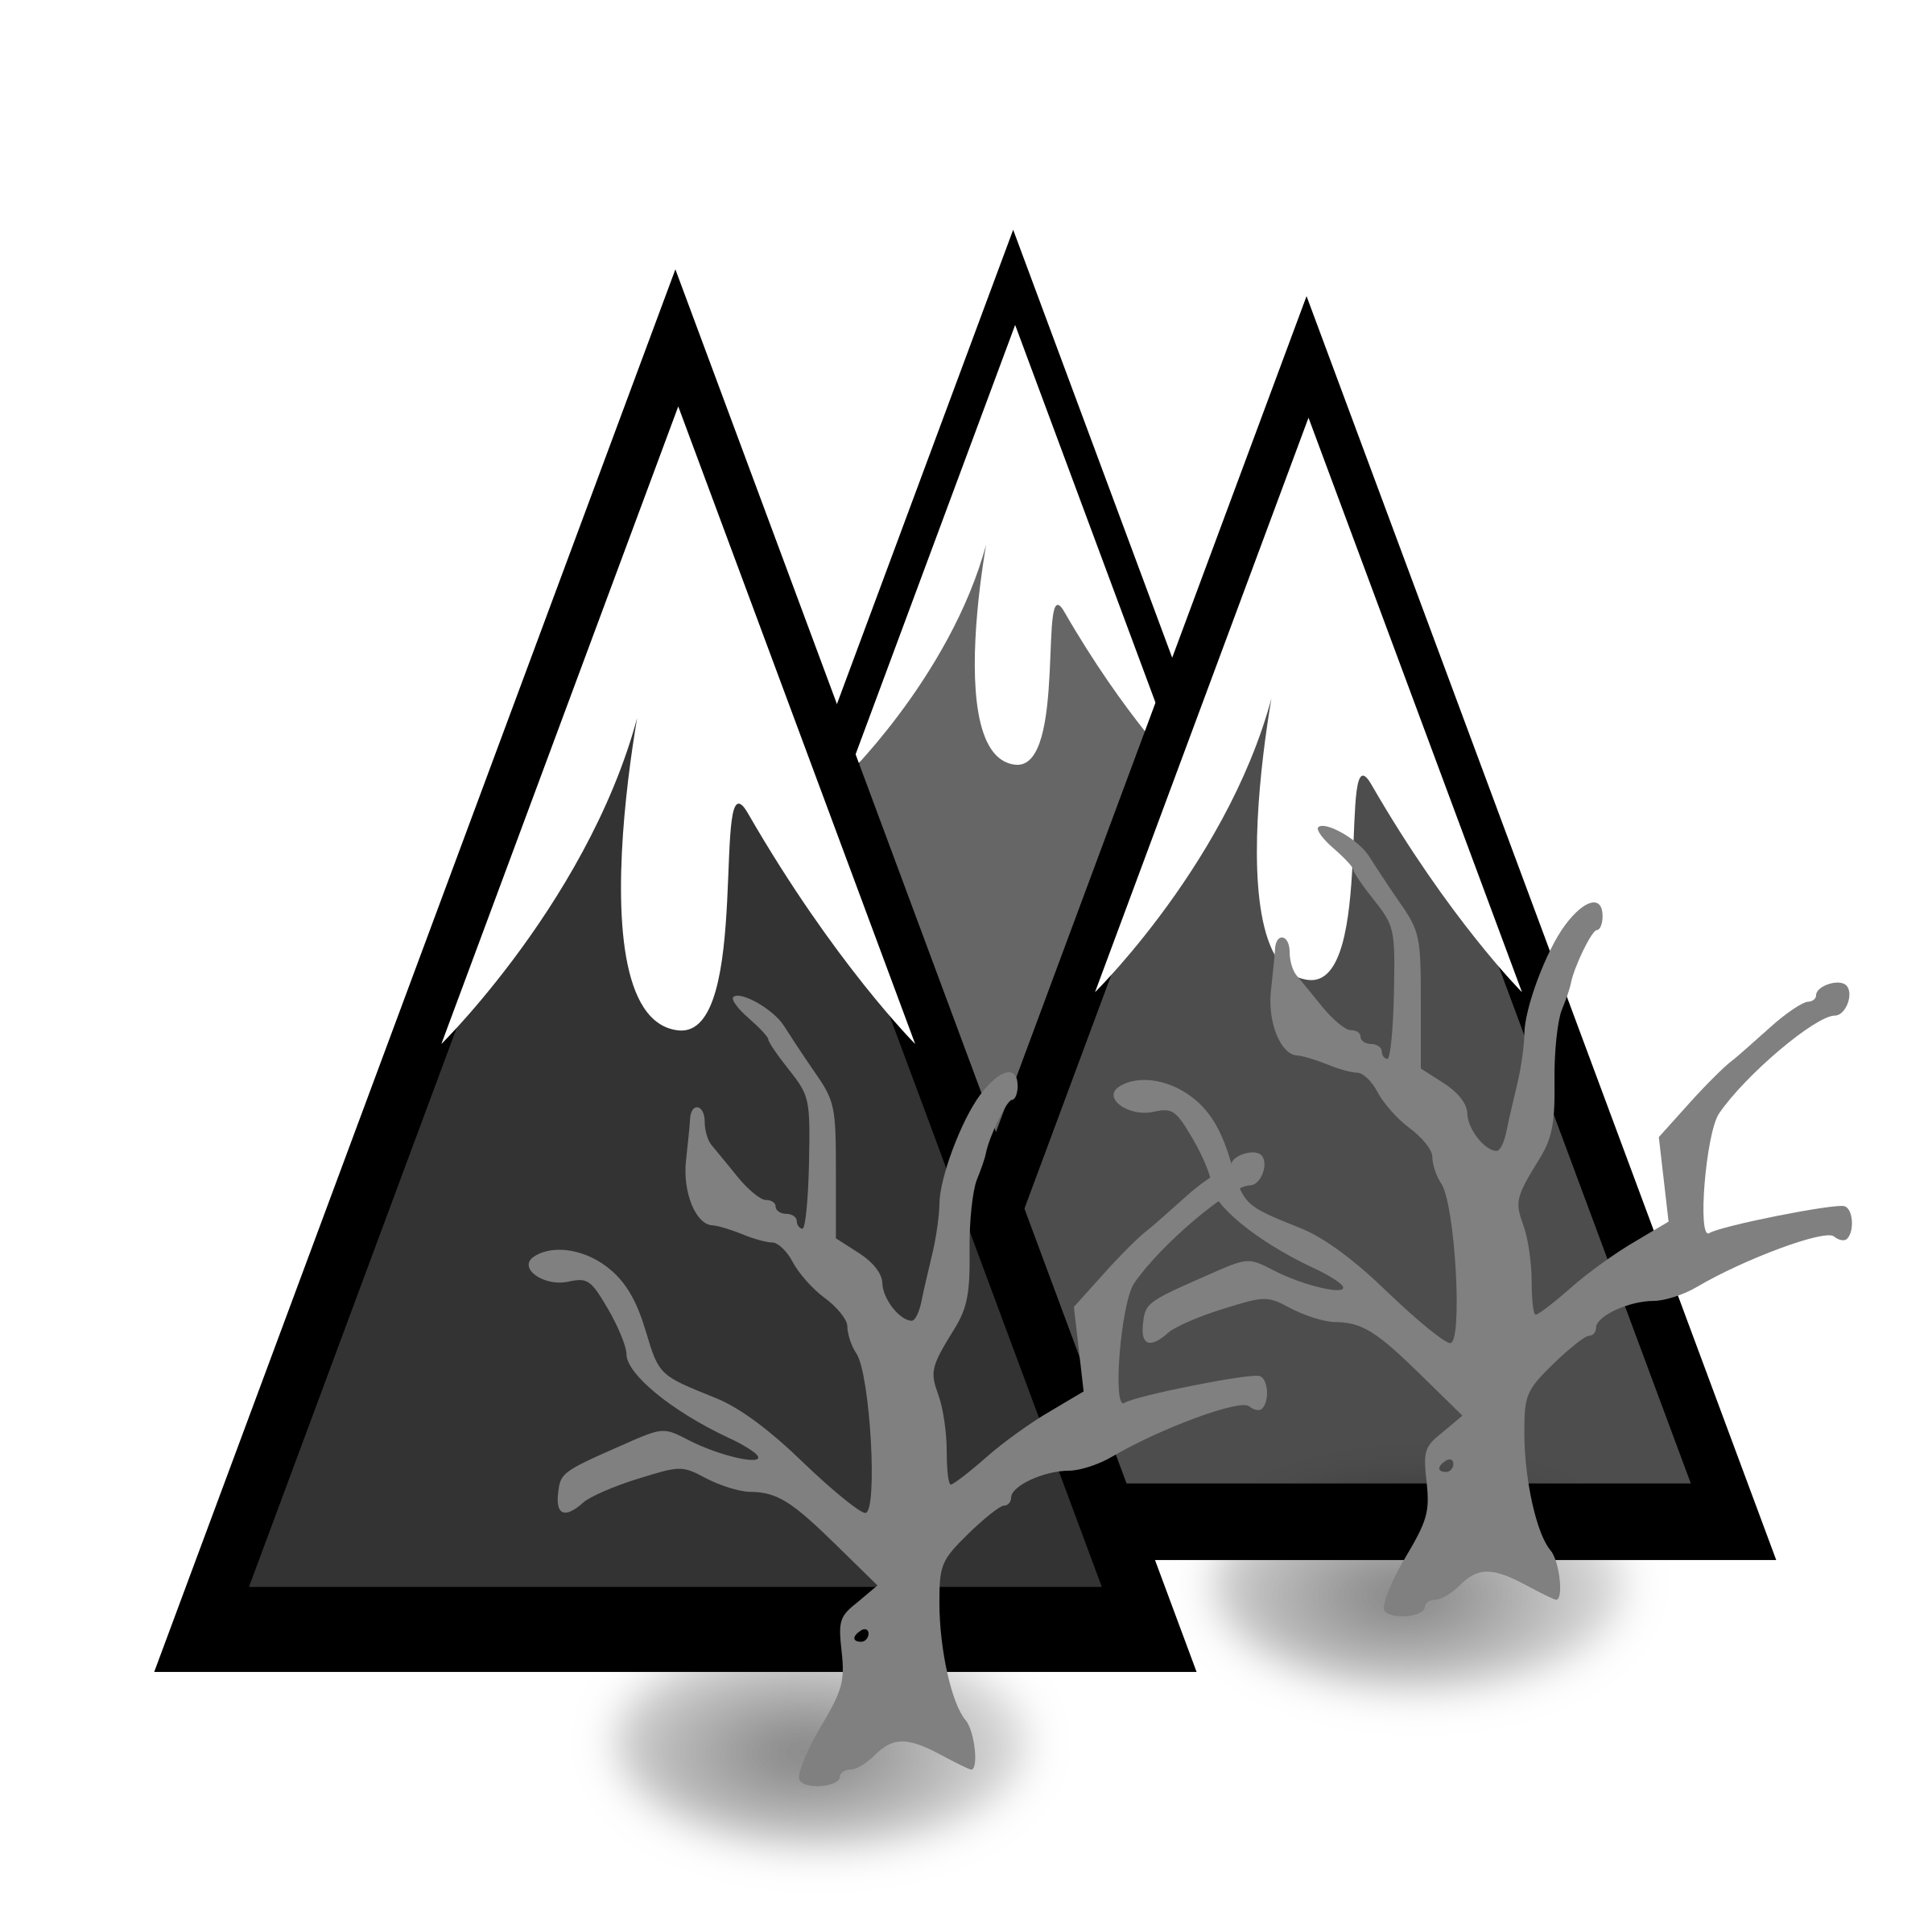 Dead big image png. Forest clipart mountains jpg transparent library